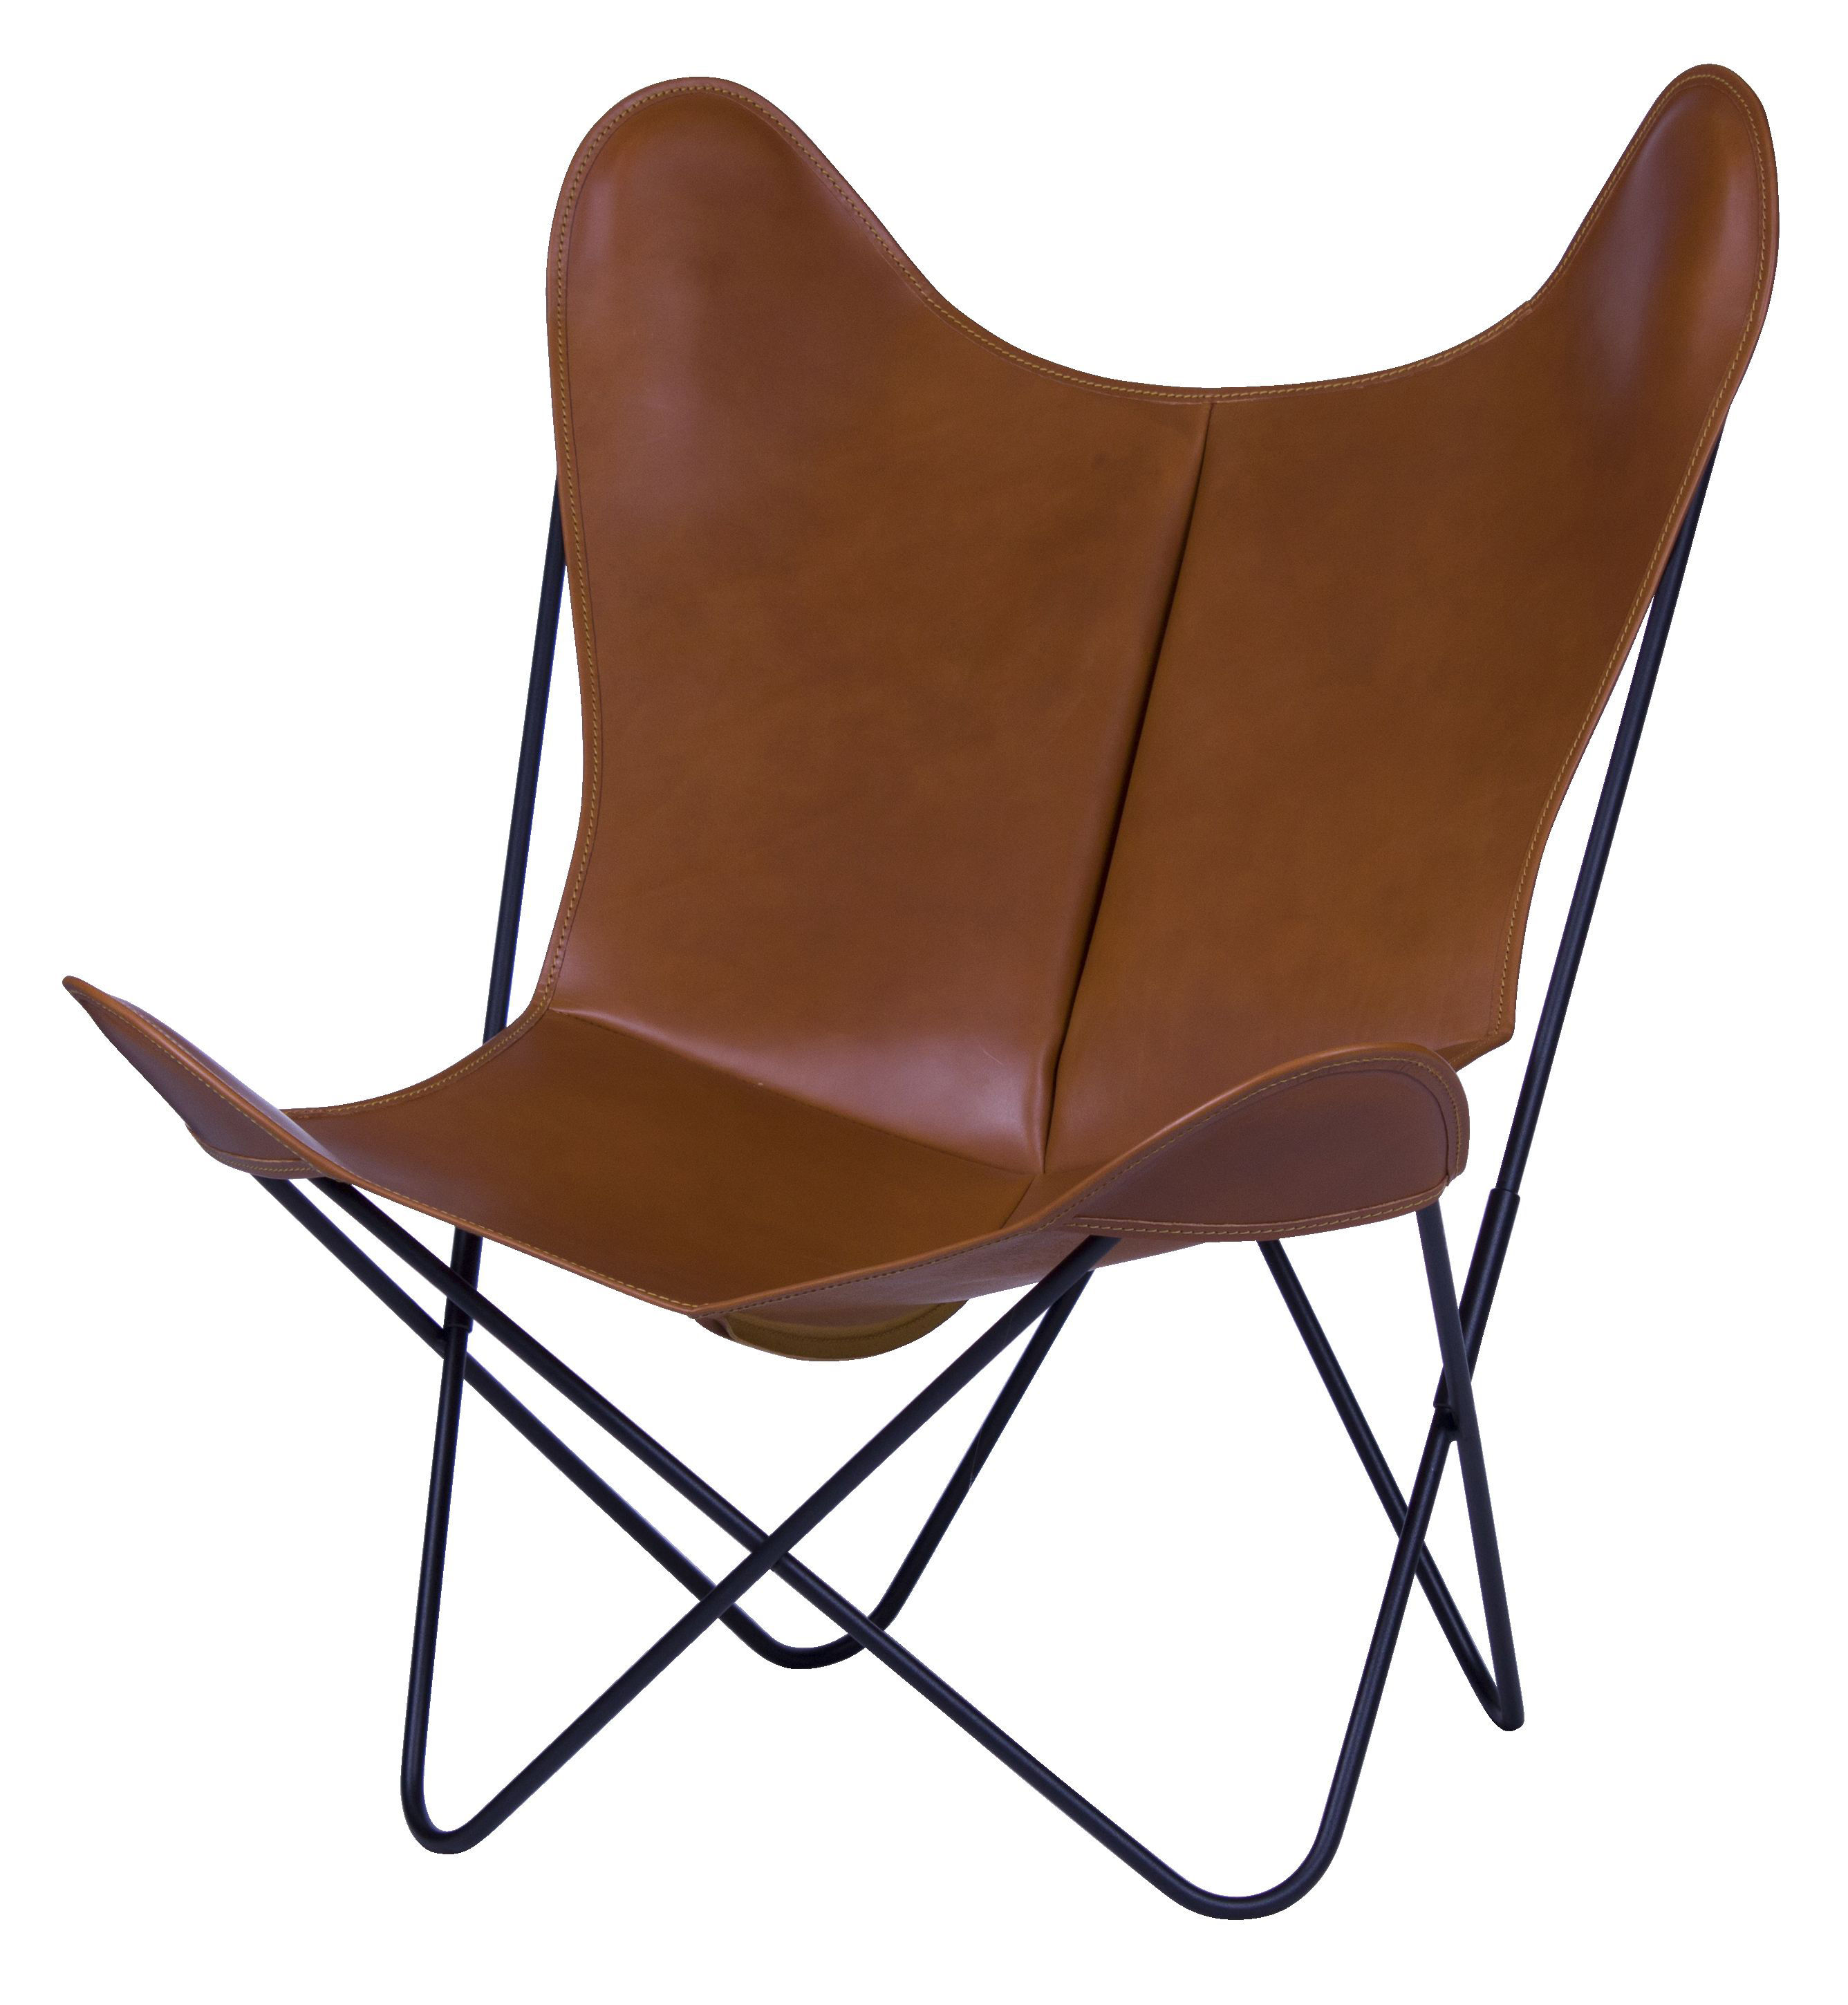 Furniture - Armchairs - AA Butterfly Armchair - Leather / Black structure by AA-New Design - Black frame / Brown leather - Lacquered steel, Leather